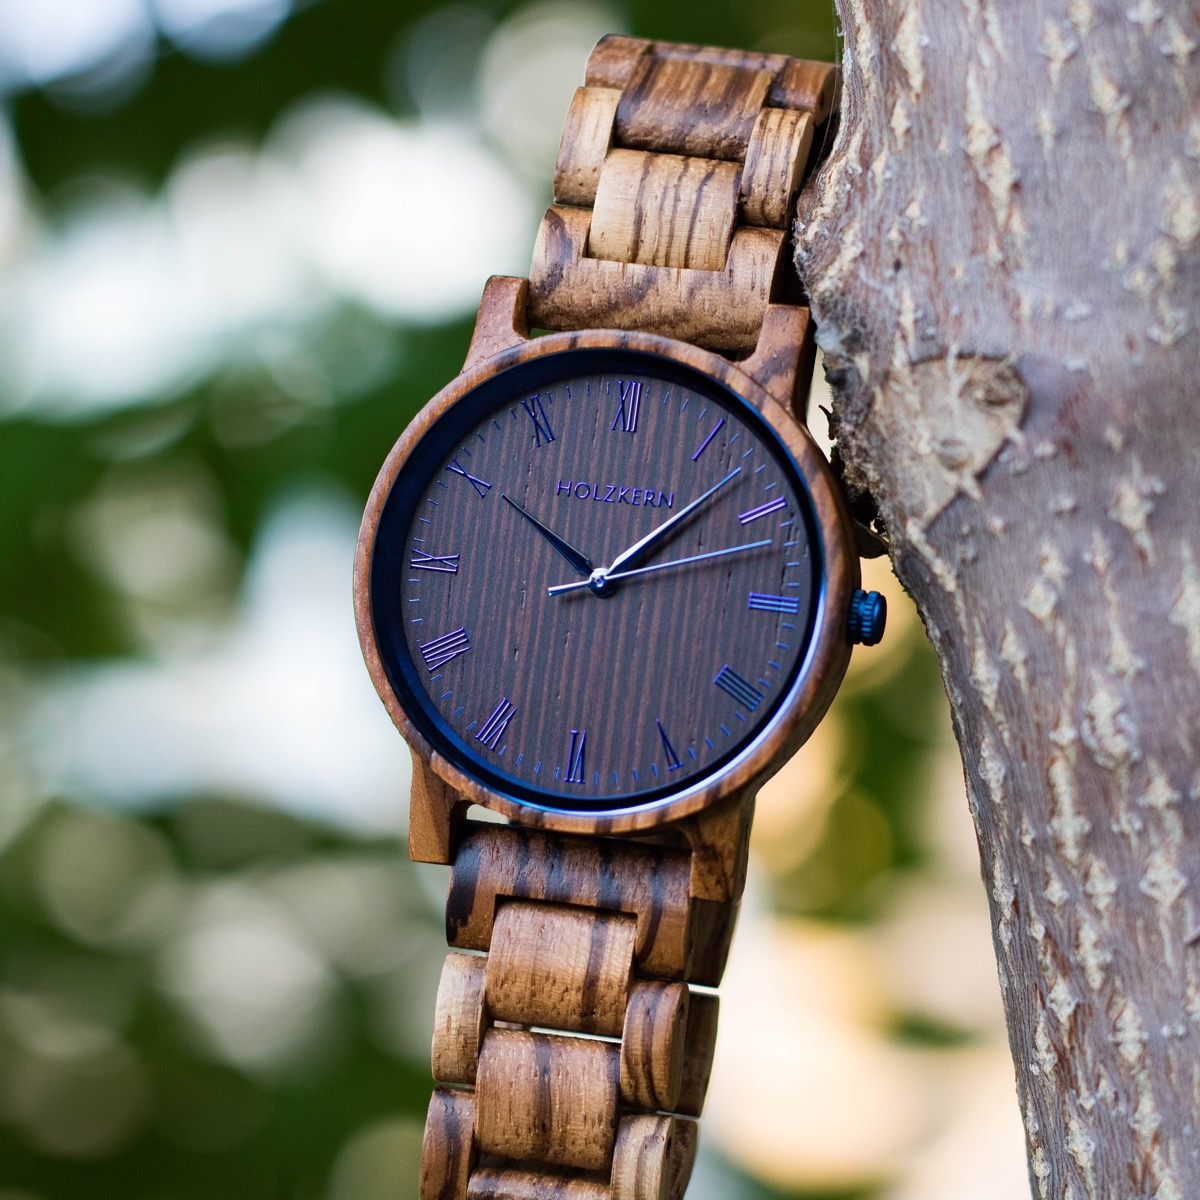 Holzkern wooden watch Fall Morning hanging in a tree